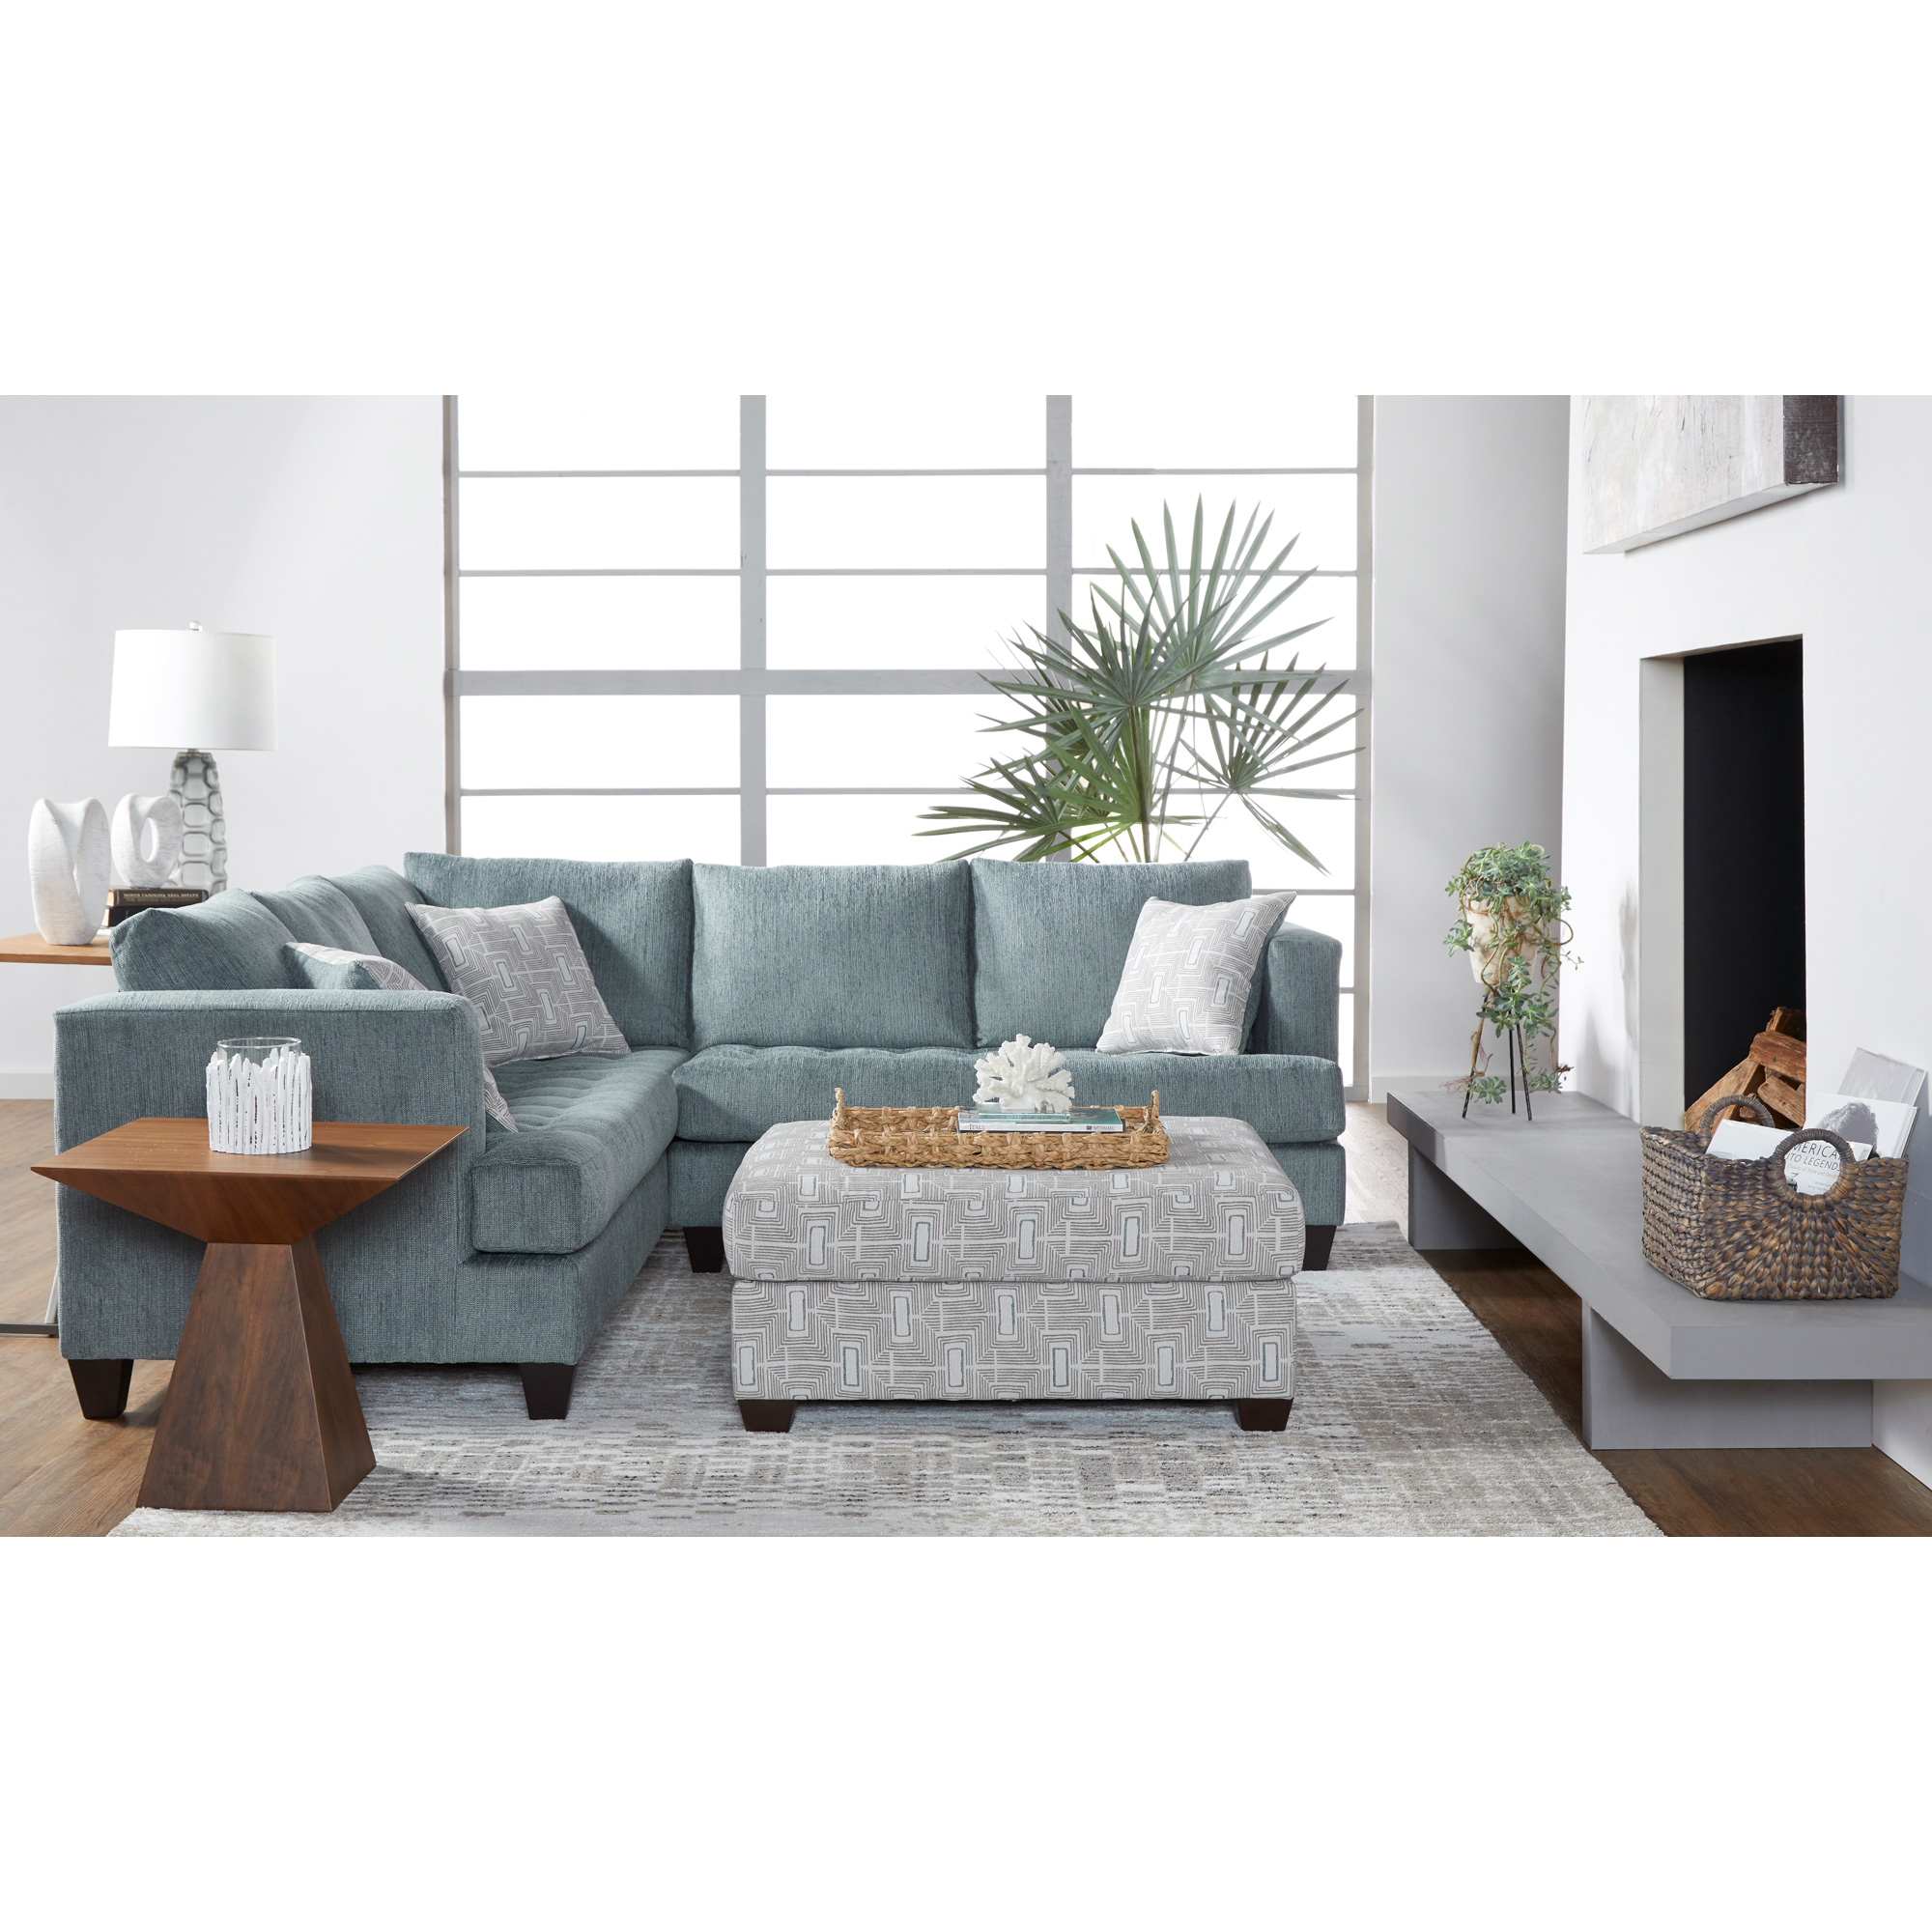 Serta Upholstery By Hughes Furniture | Asta Cerulean Sectional Sofa